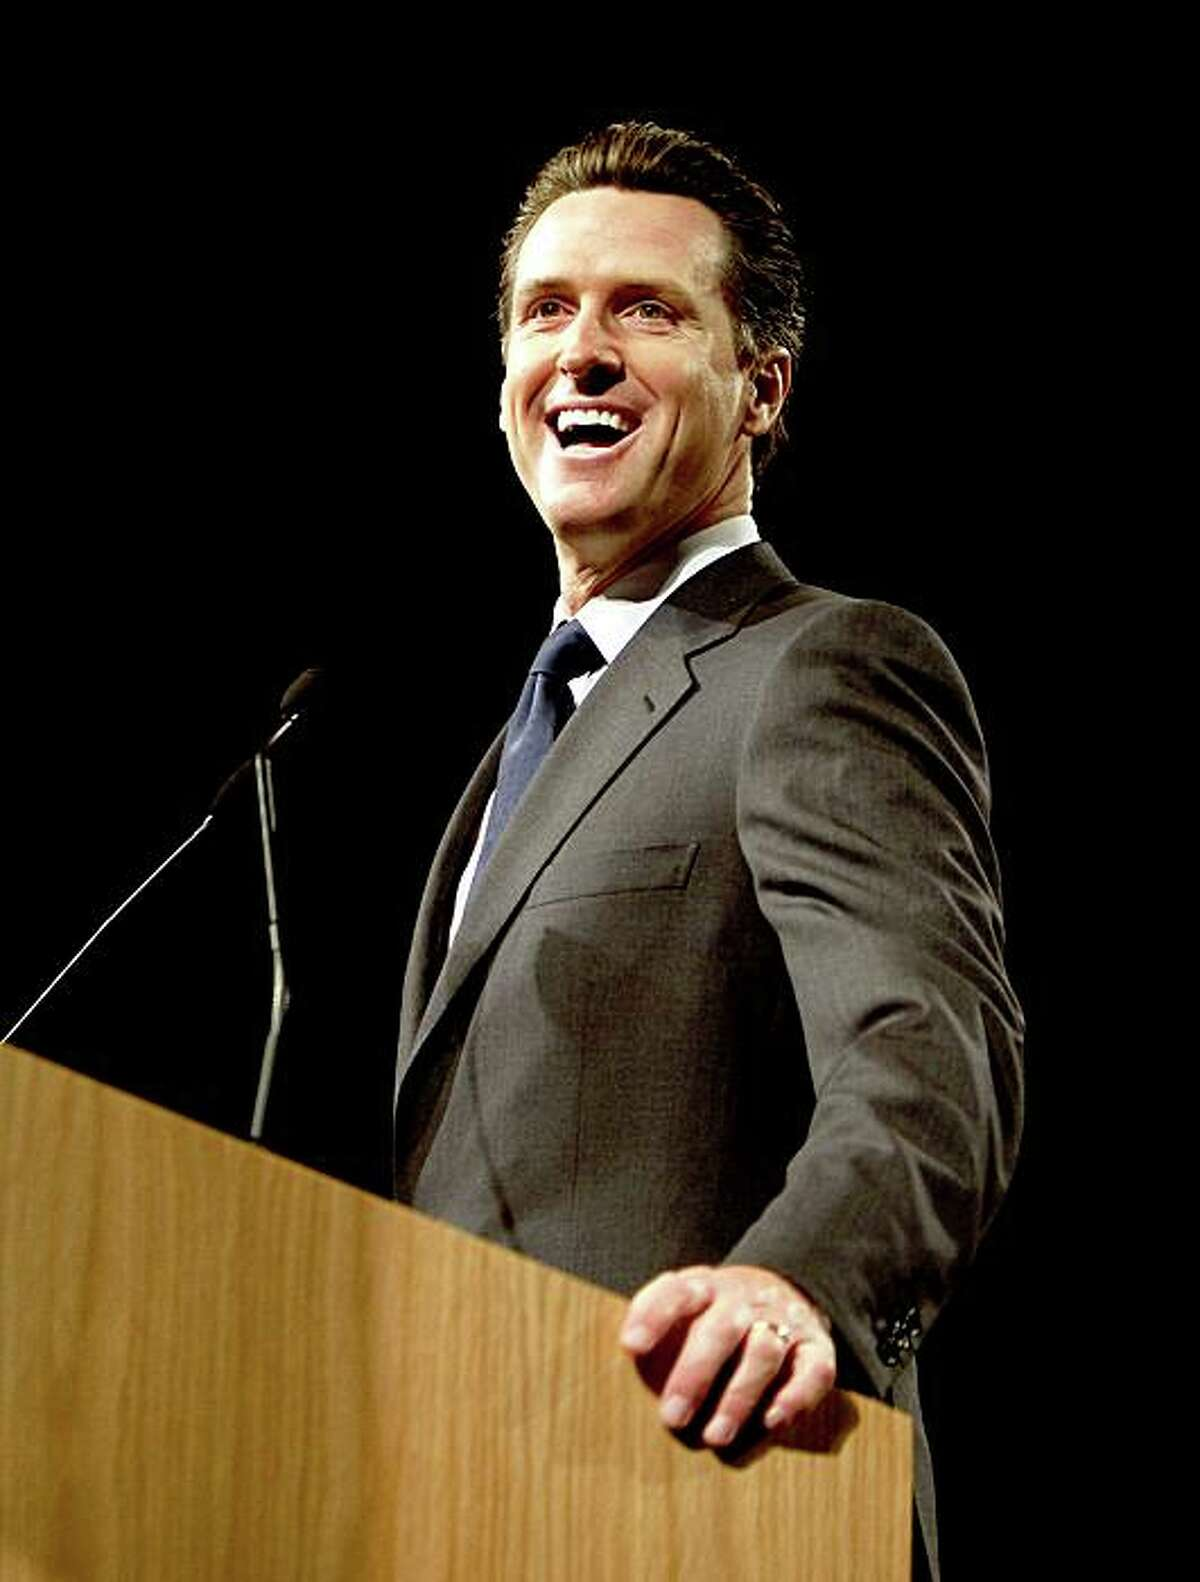 San Francisco mayor and 2010 gubernatorial candidate Gavin Newsom speaks at the California Democratic Party state convention in Sacramento Saturday morning, April 25, 2009, at the Convention Center. His rival, state attorney general Jerry Brown, laer addressed the delegates. The convention concludes Sunday.